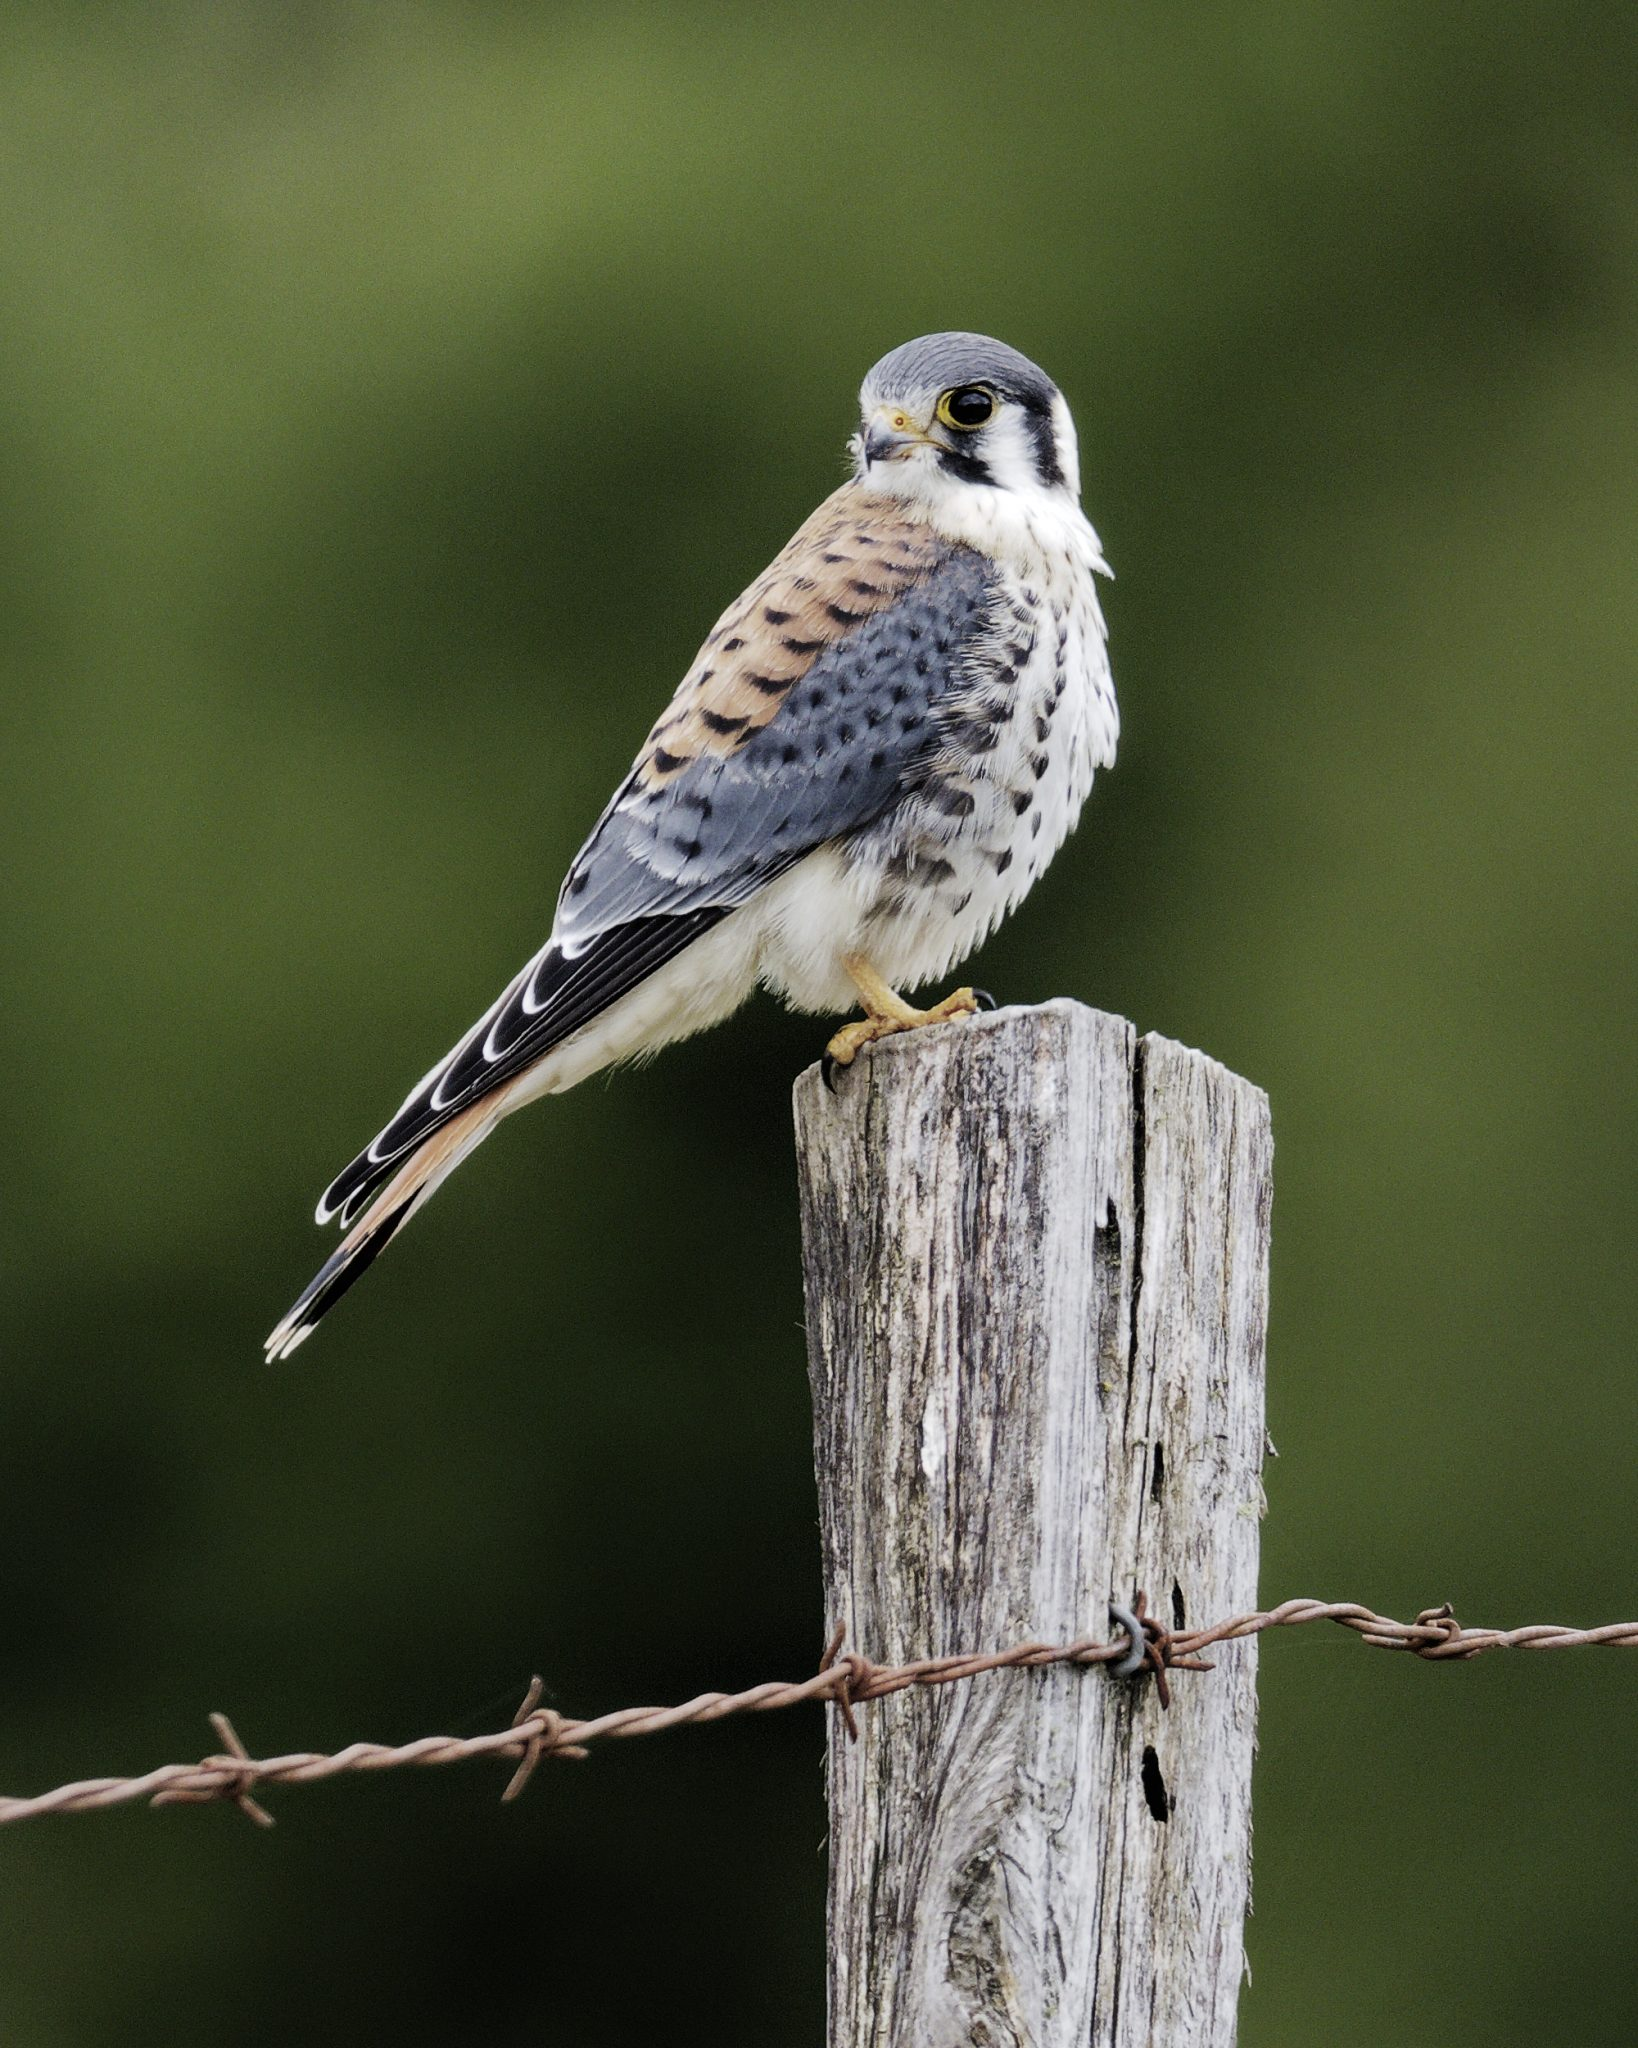 A male American Kestrel perches on a fence post